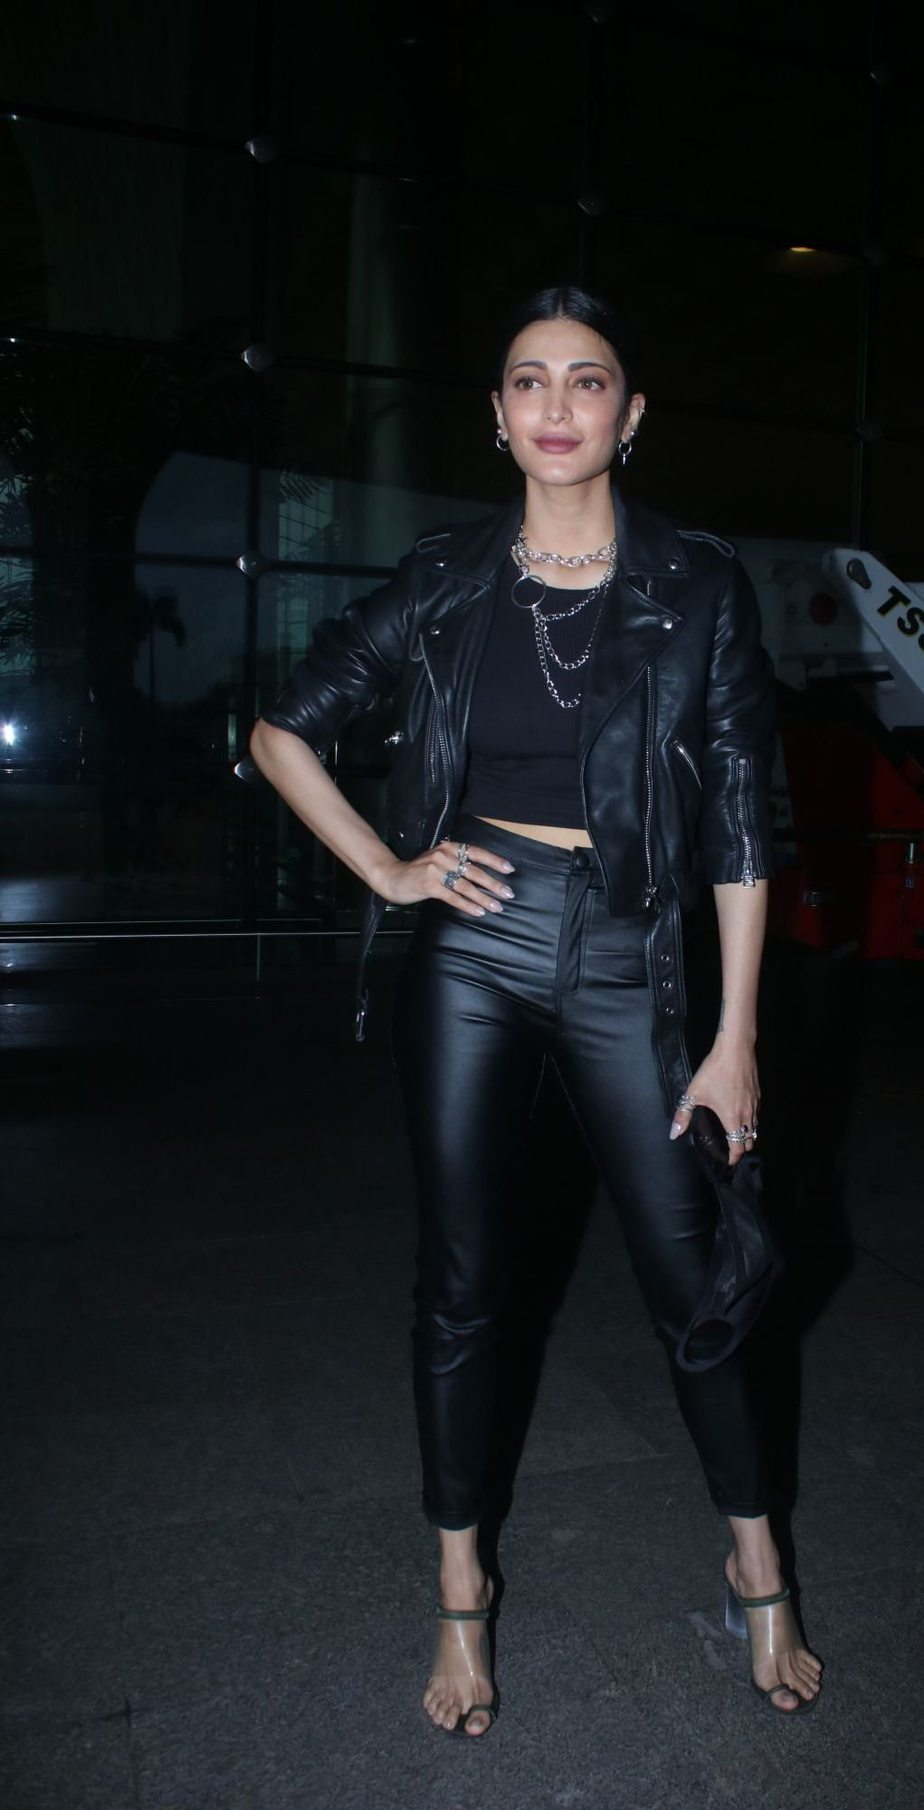 Shruti Hassan in black leather outfit at the airport-2